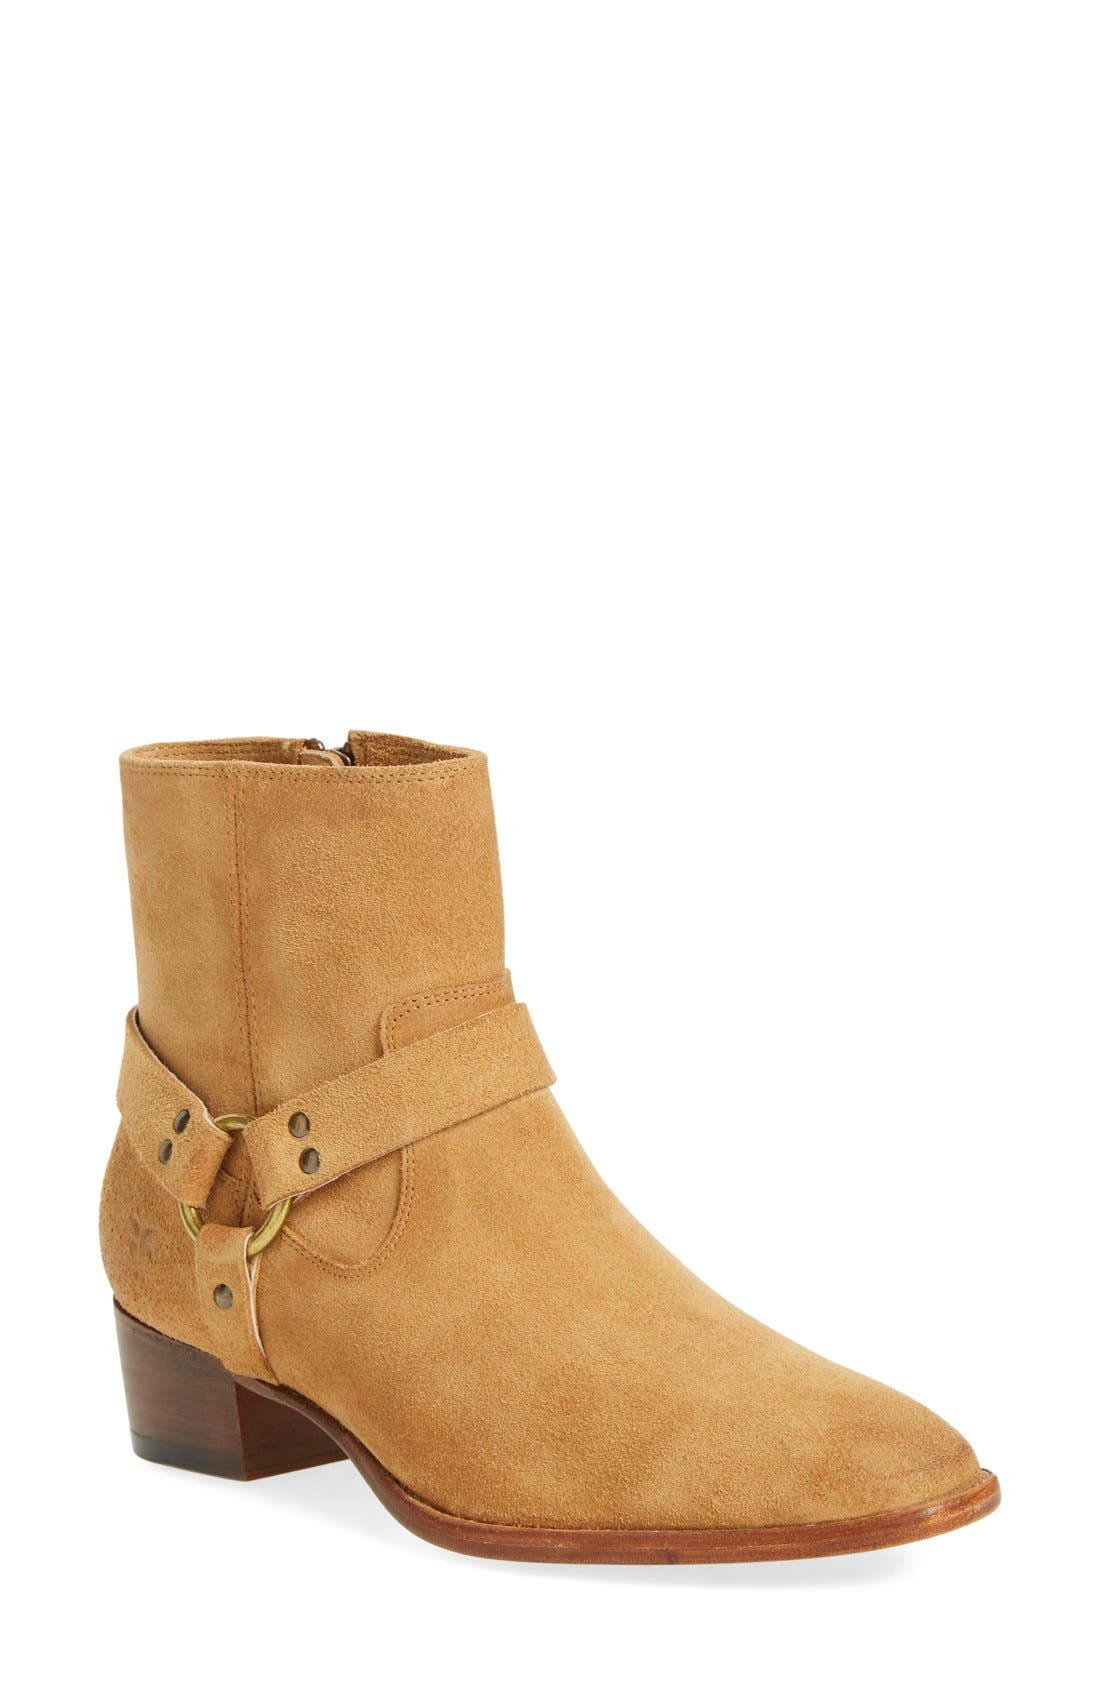 Main Image - Frye 'Dara' Harness Boot (Women)